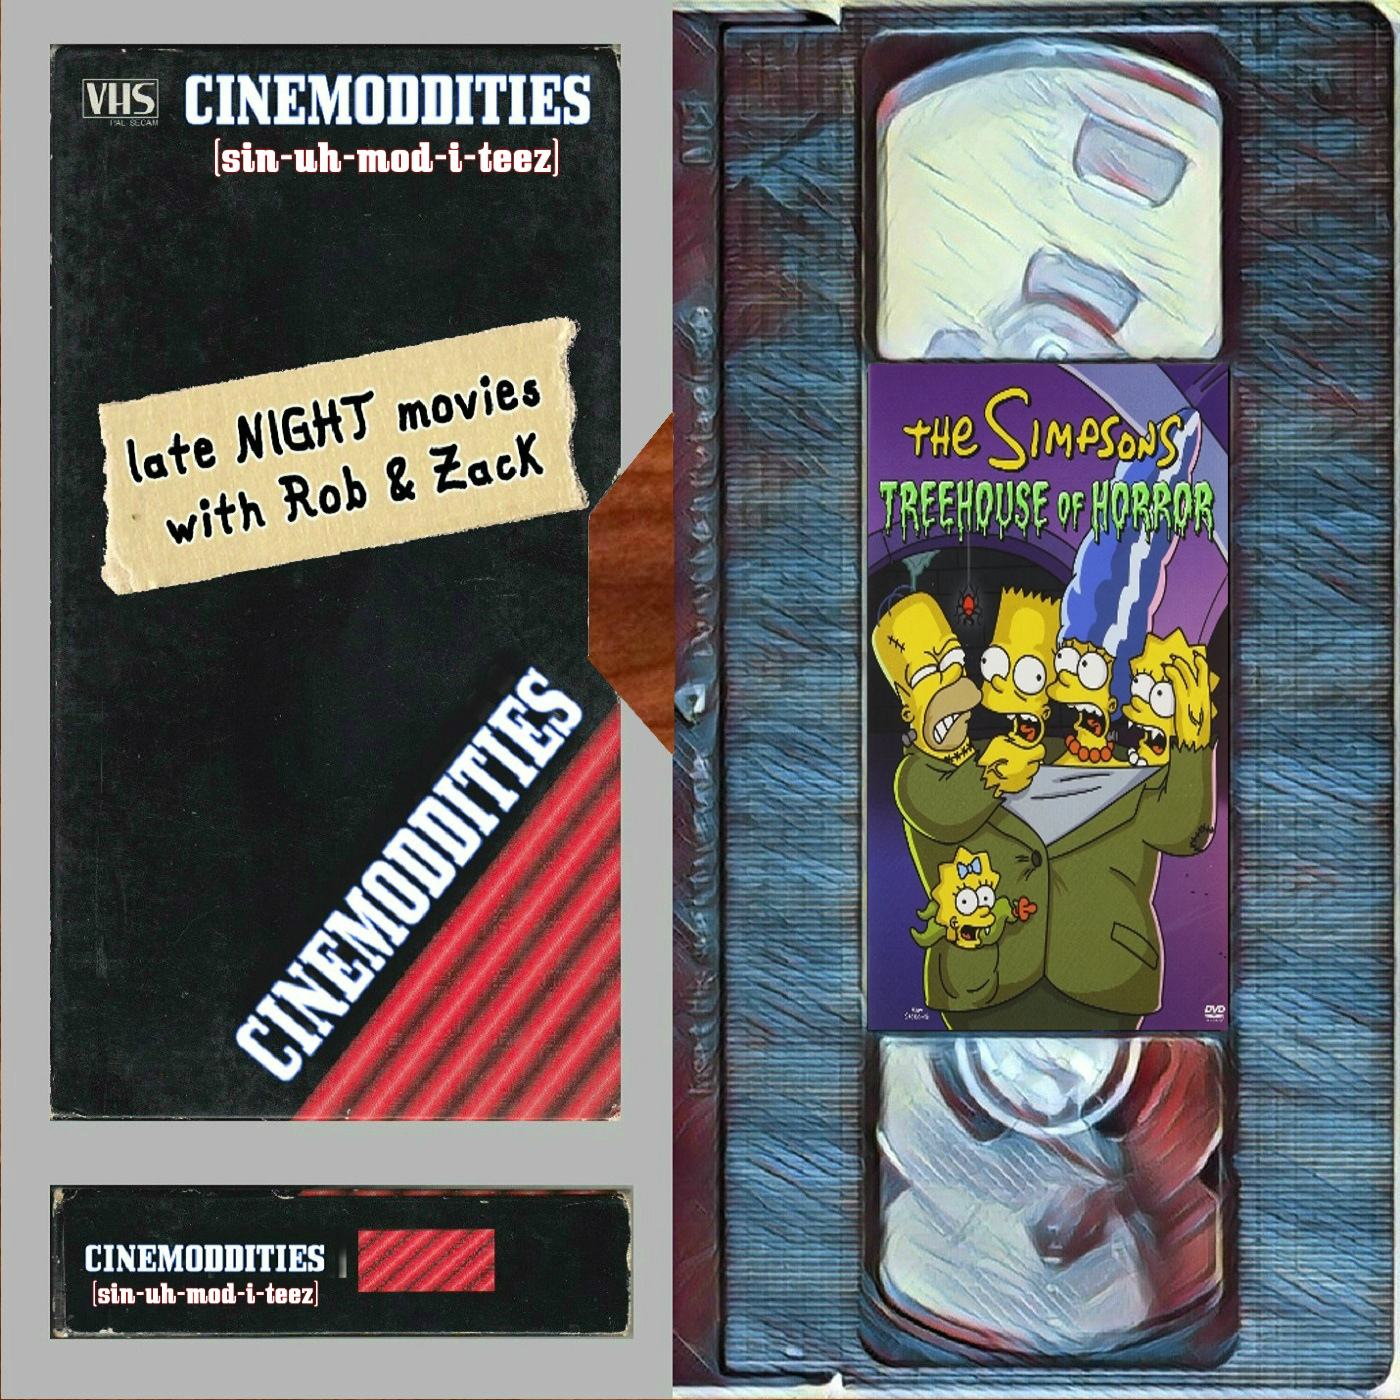 Cinemoddities – late NIGHT movies with Rob & Zack